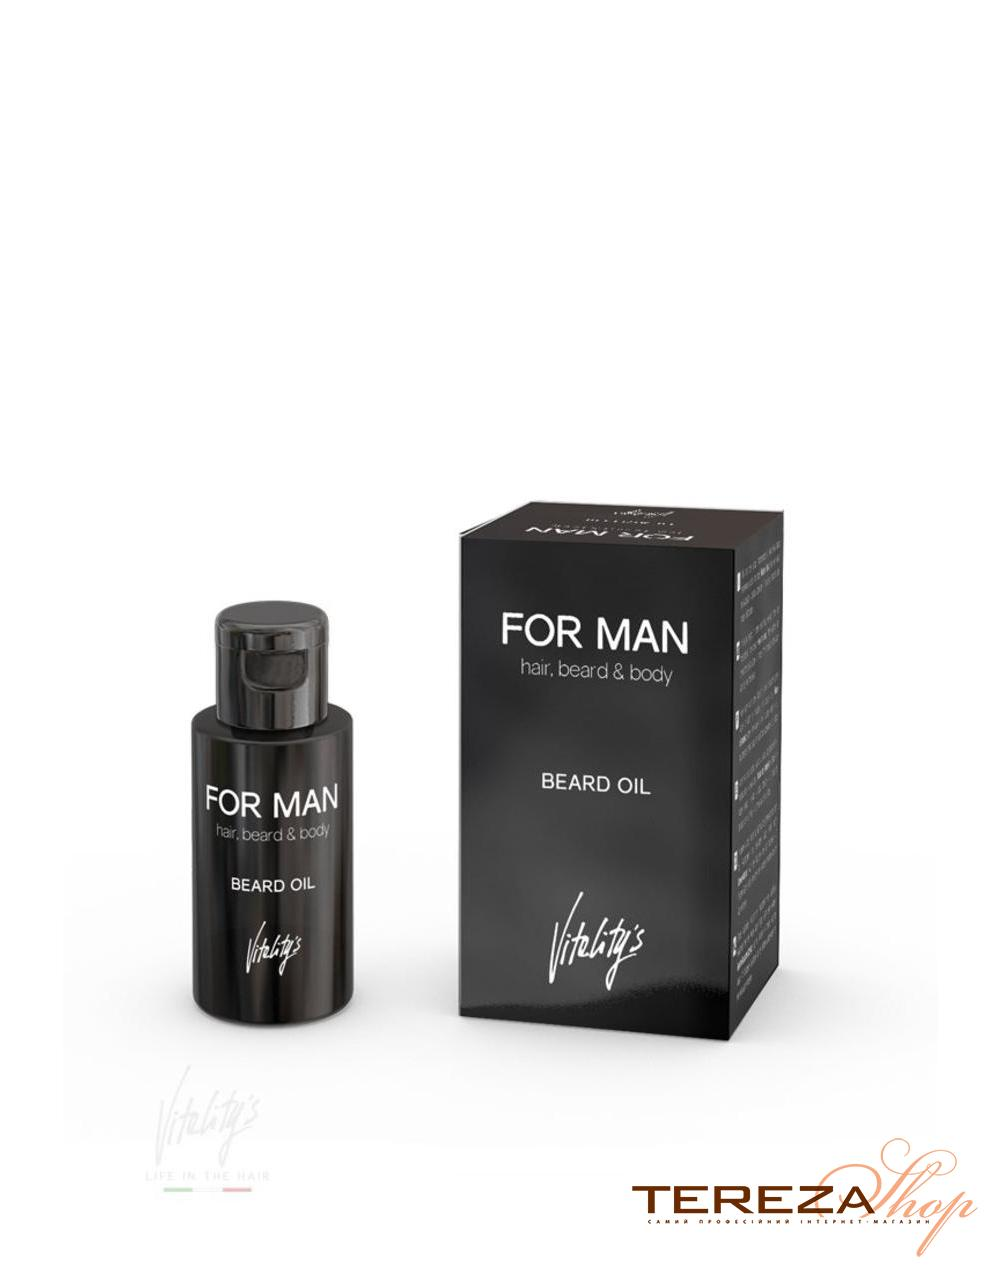 FOR MAN BEARD OIL VITALITY'S | Tereza Shop